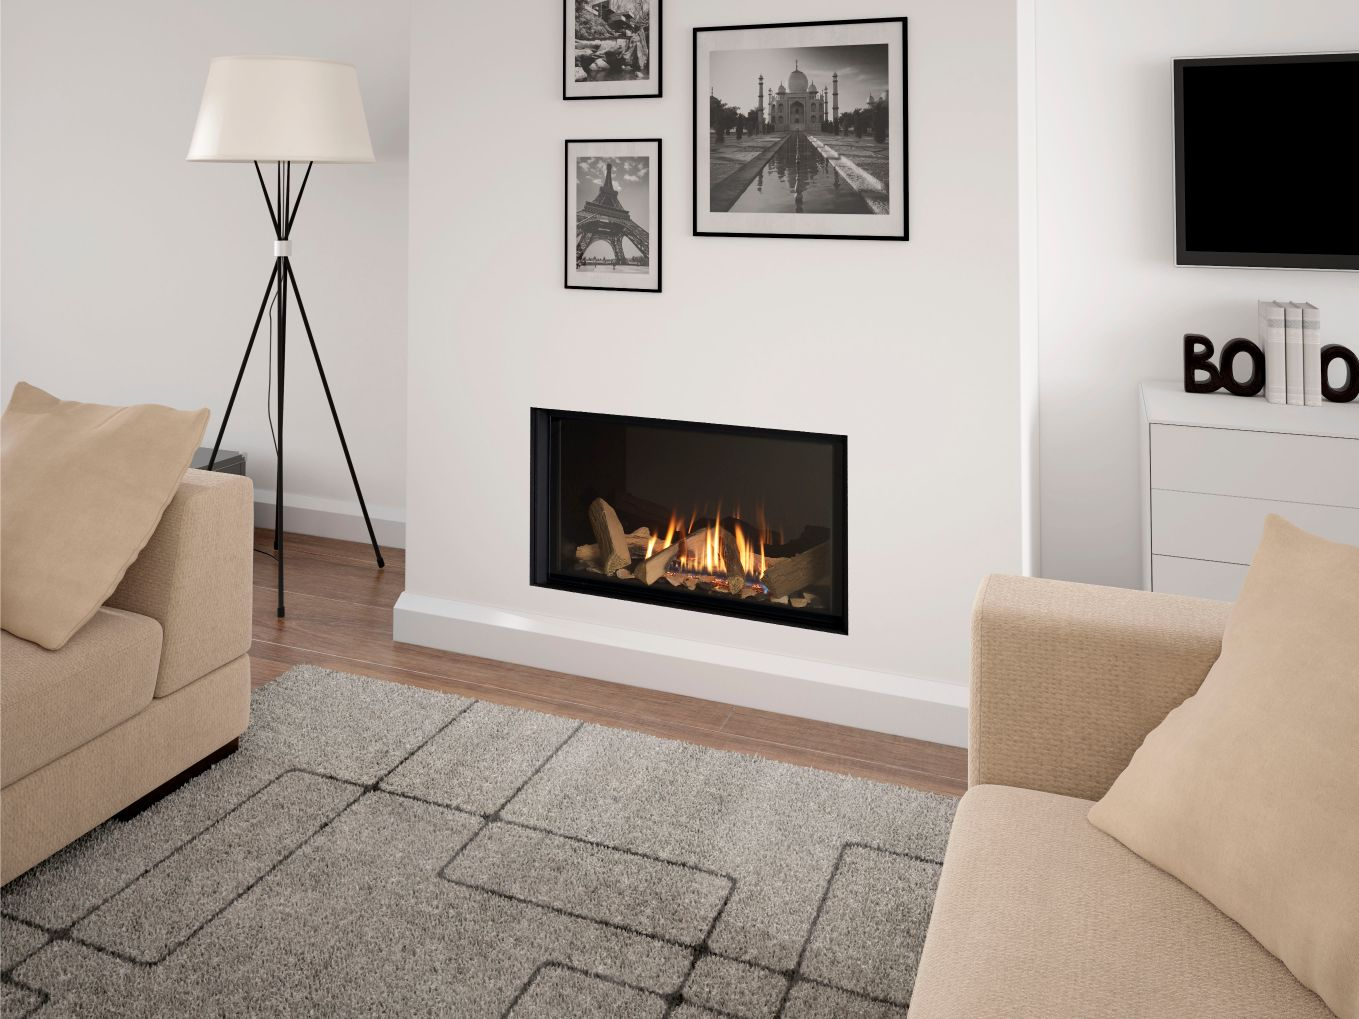 Infinity 780 Frameless Gas Fire, Edgeless Hole in the Wall Gas Fire